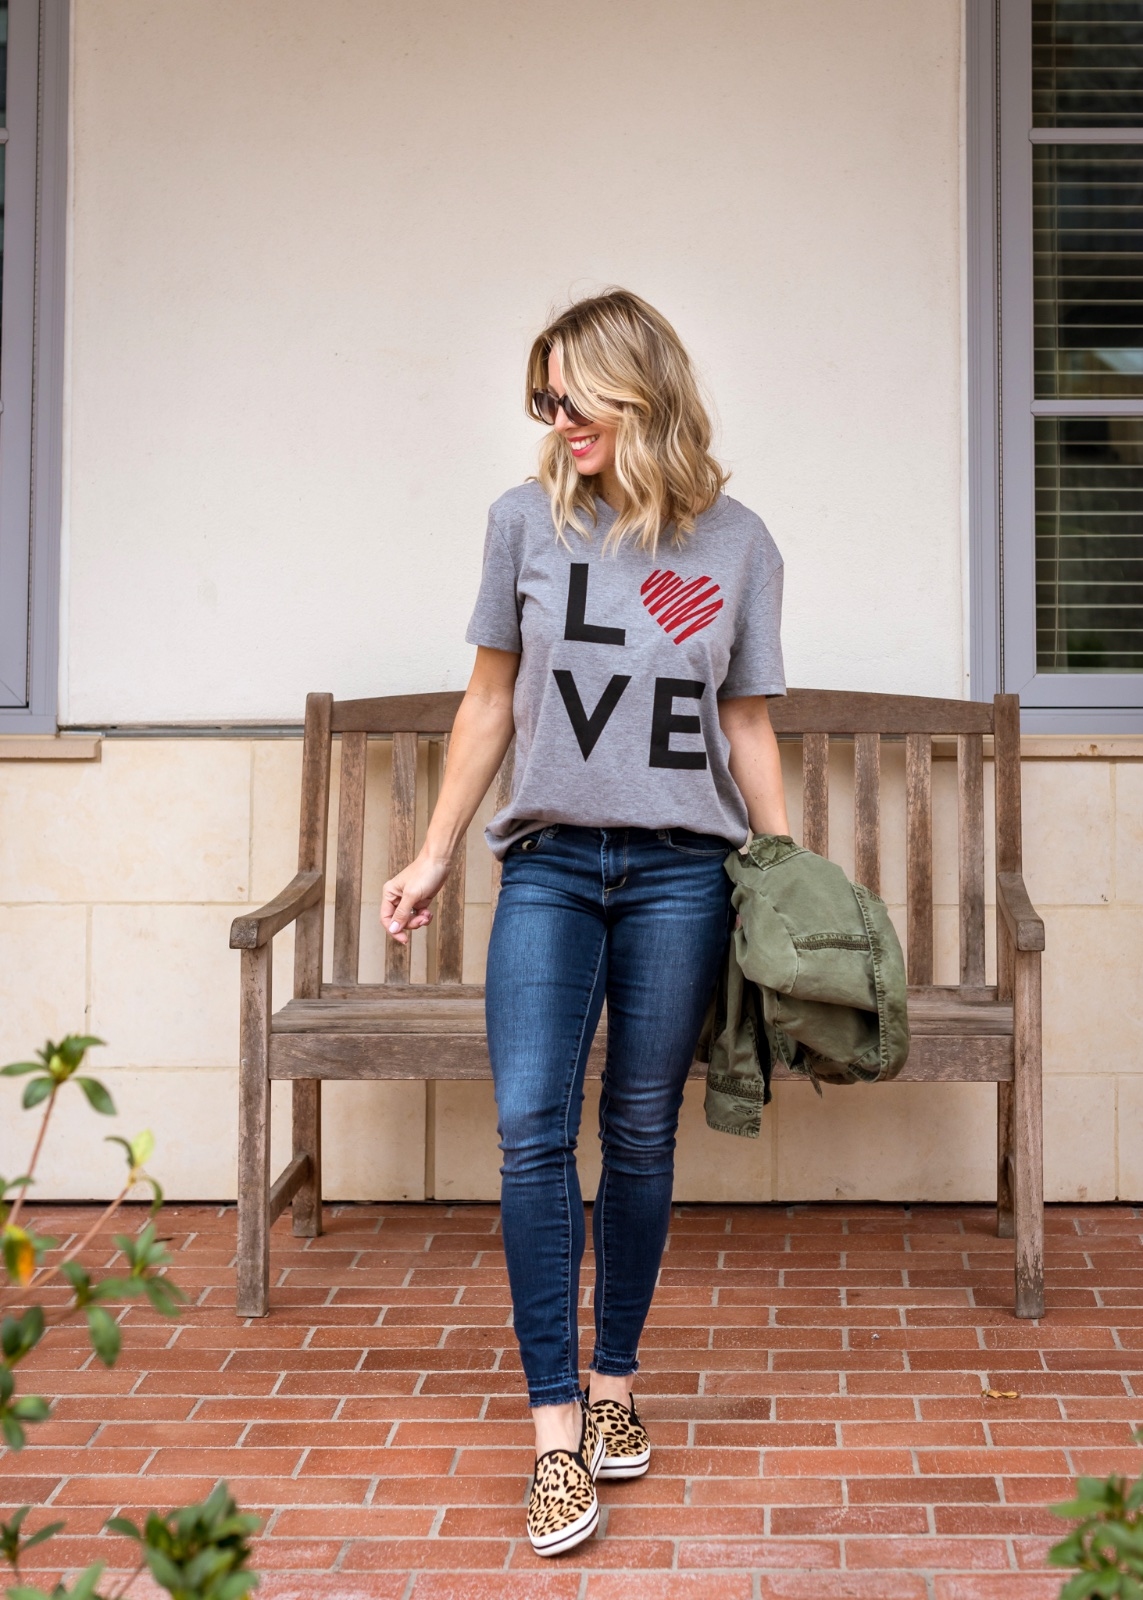 Jeans and love tee with leopard sneakers